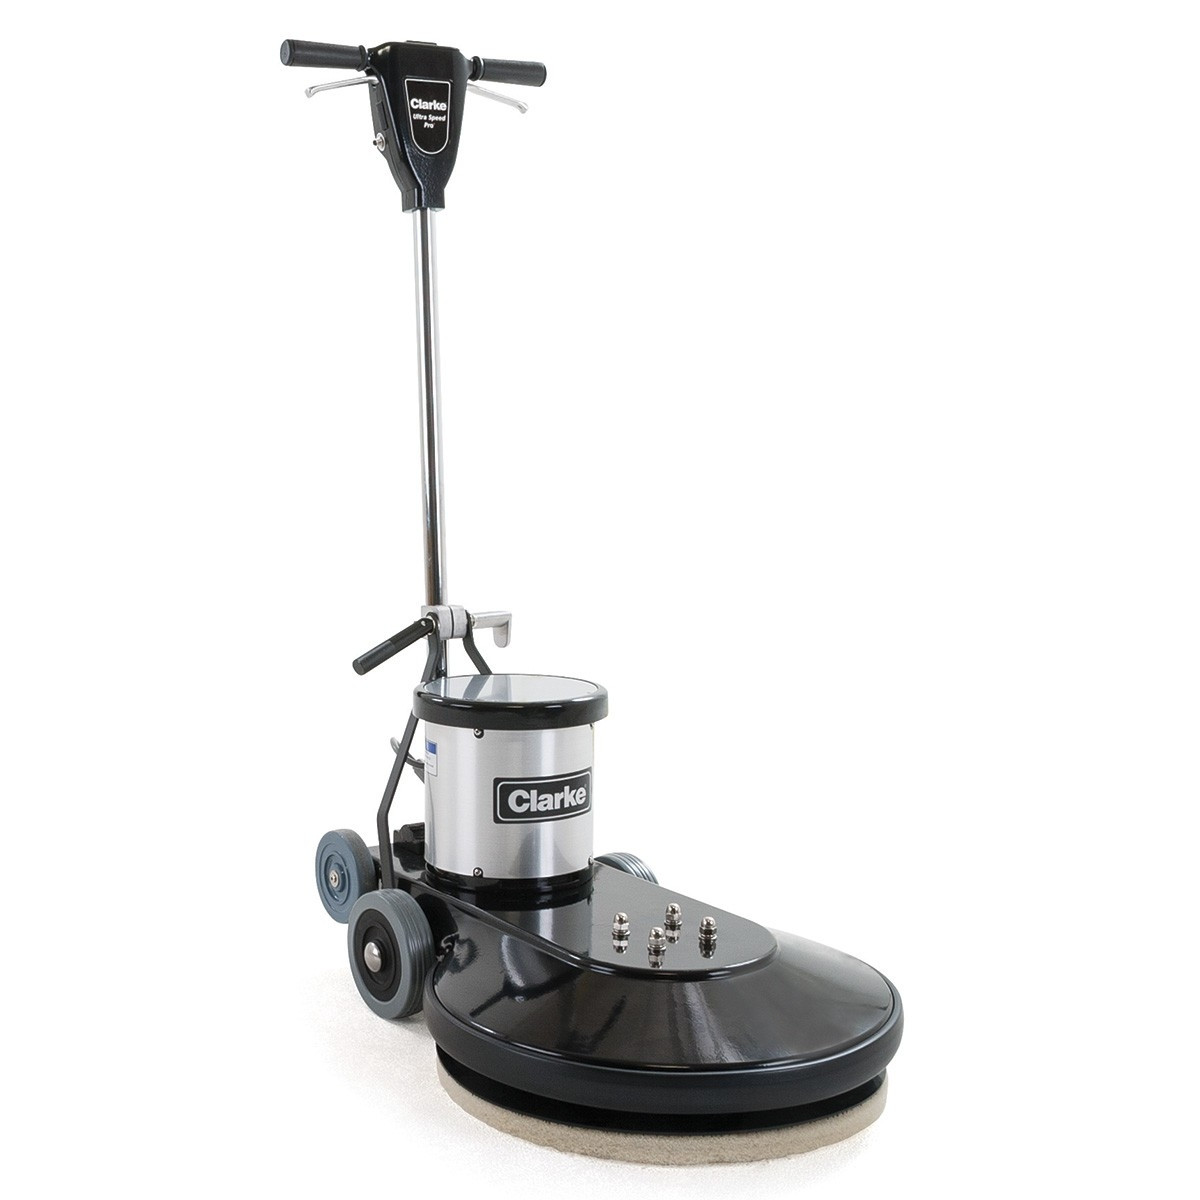 Clarke 174 Ultra Speed Pro 174 1500 Rpm High Speed Floor Burnisher